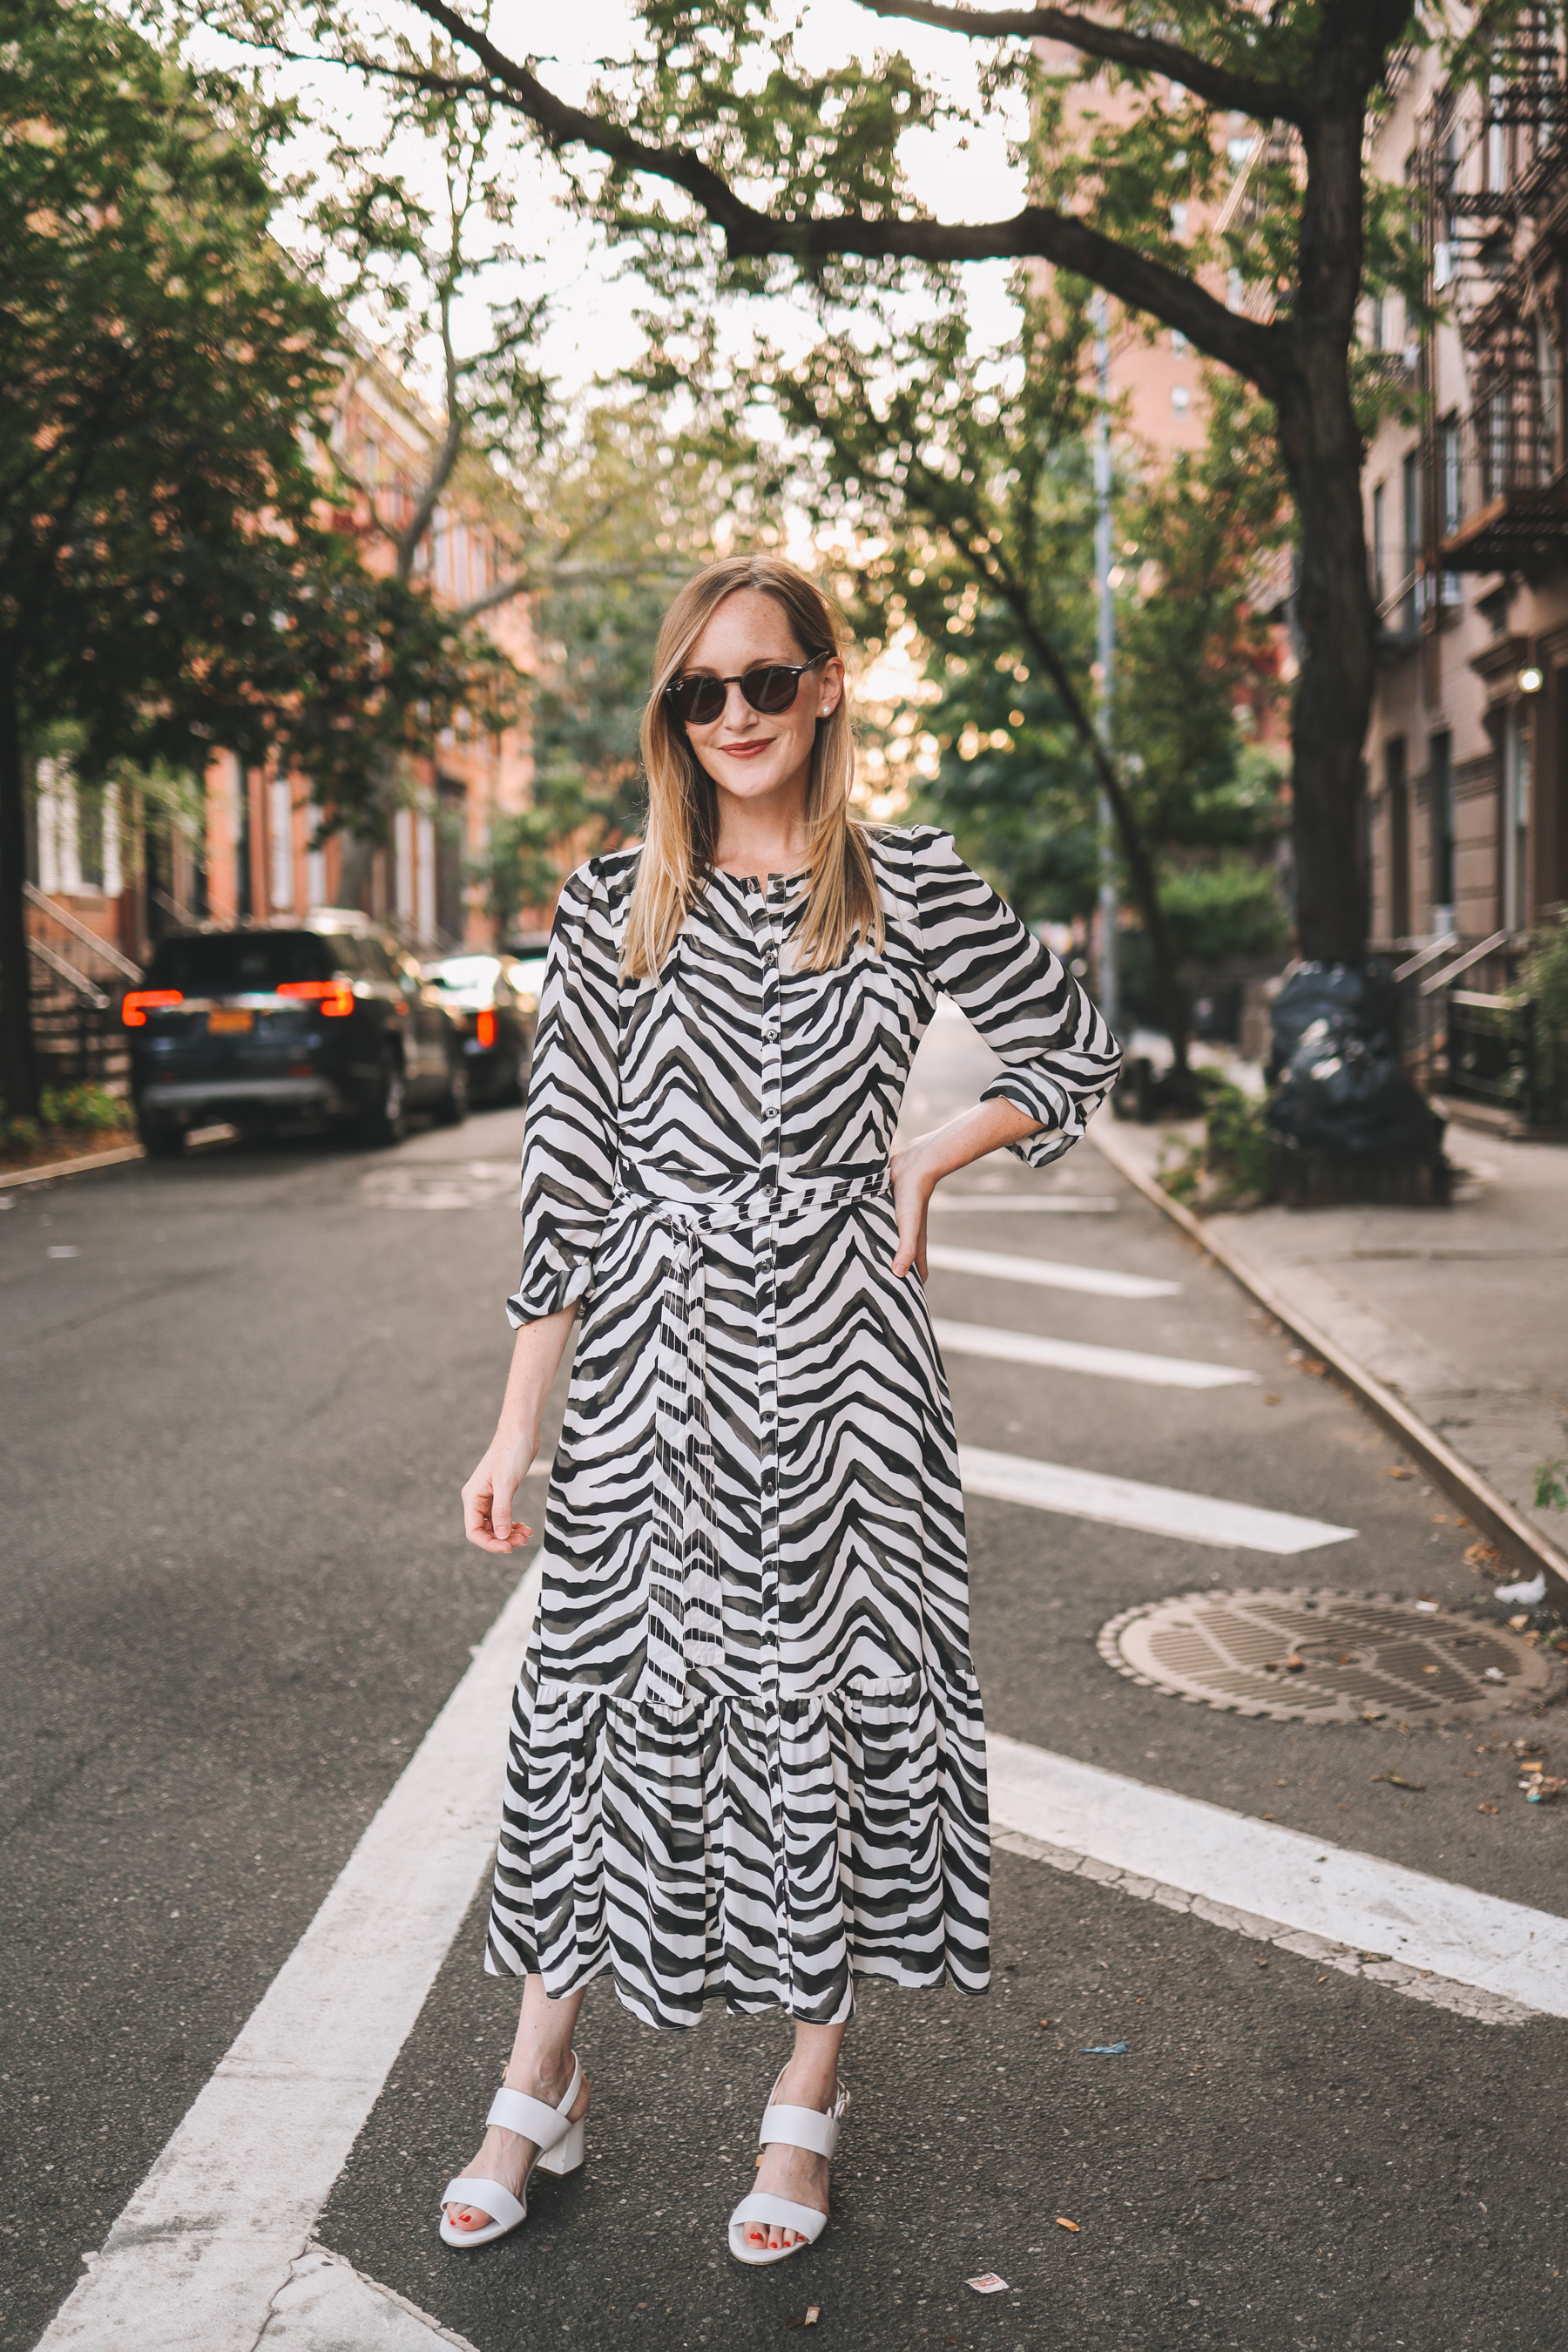 The  Zebra Dress from Banana Republic | Kelly in the City